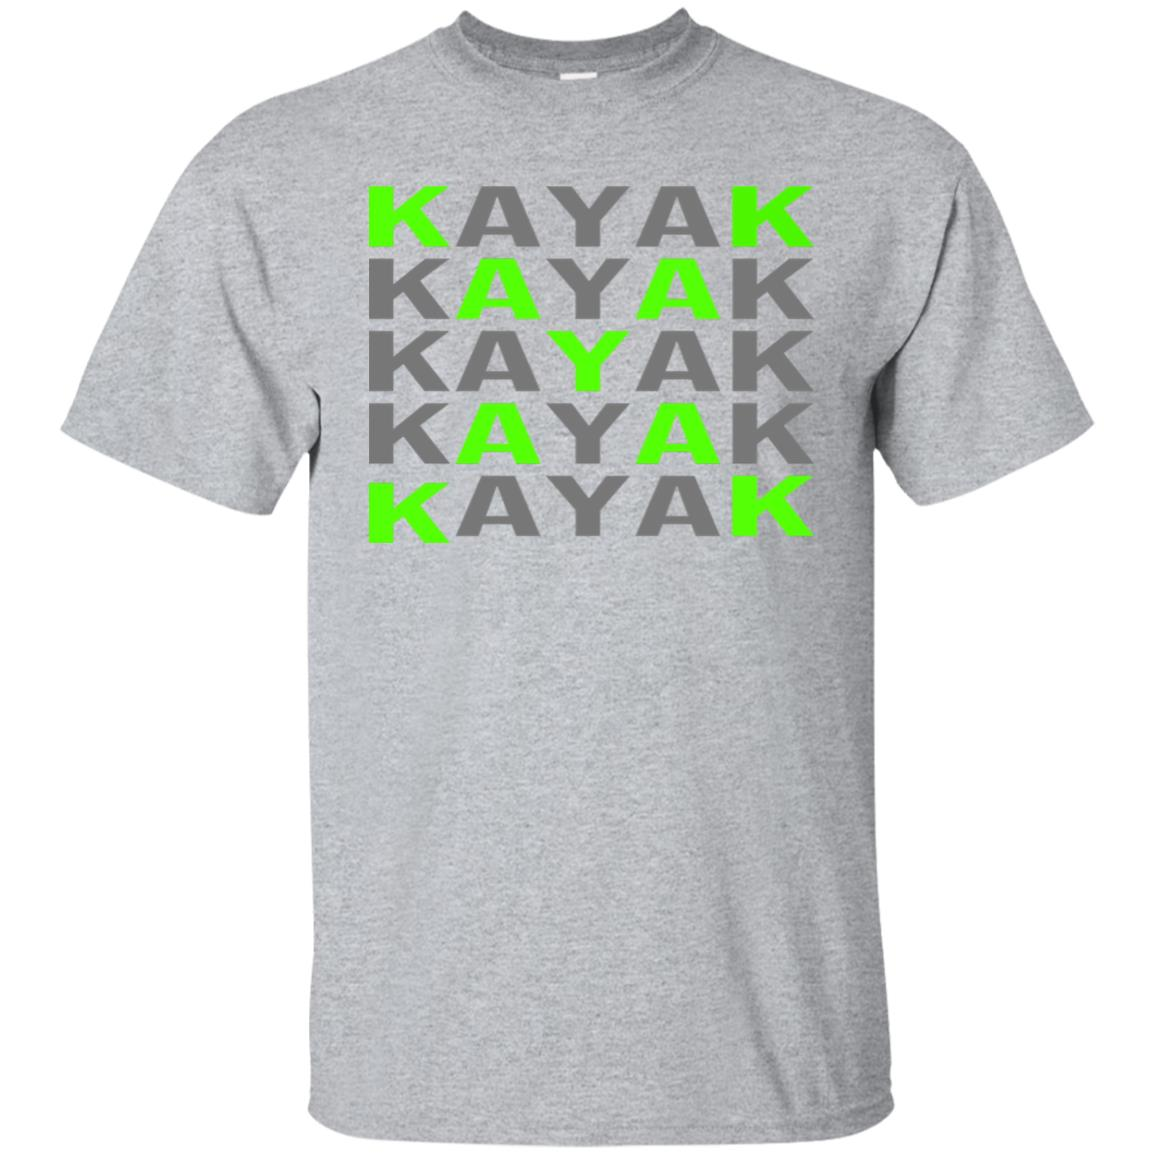 Kayak Classic for the Outdoor Whitewater river adventurer Unisex Short Sleeve